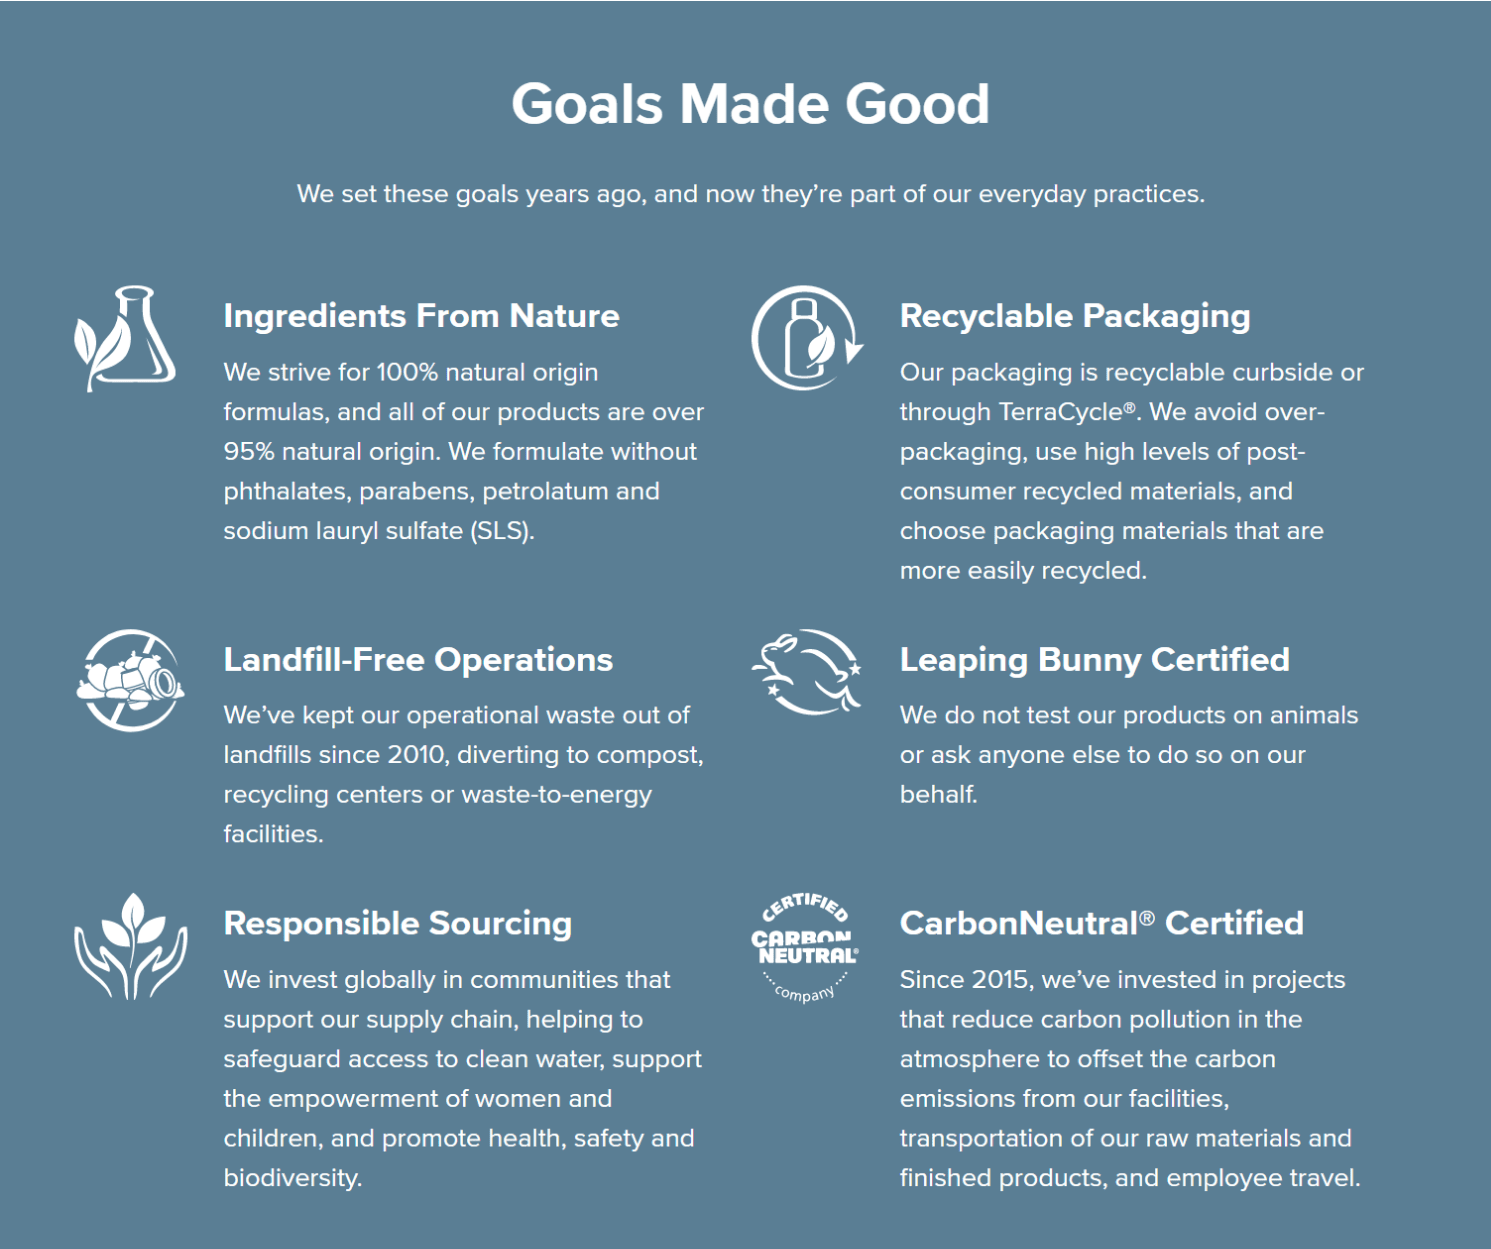 Goals that we have achieved such as sourcing ingredients responsibly and using recyclable packaging